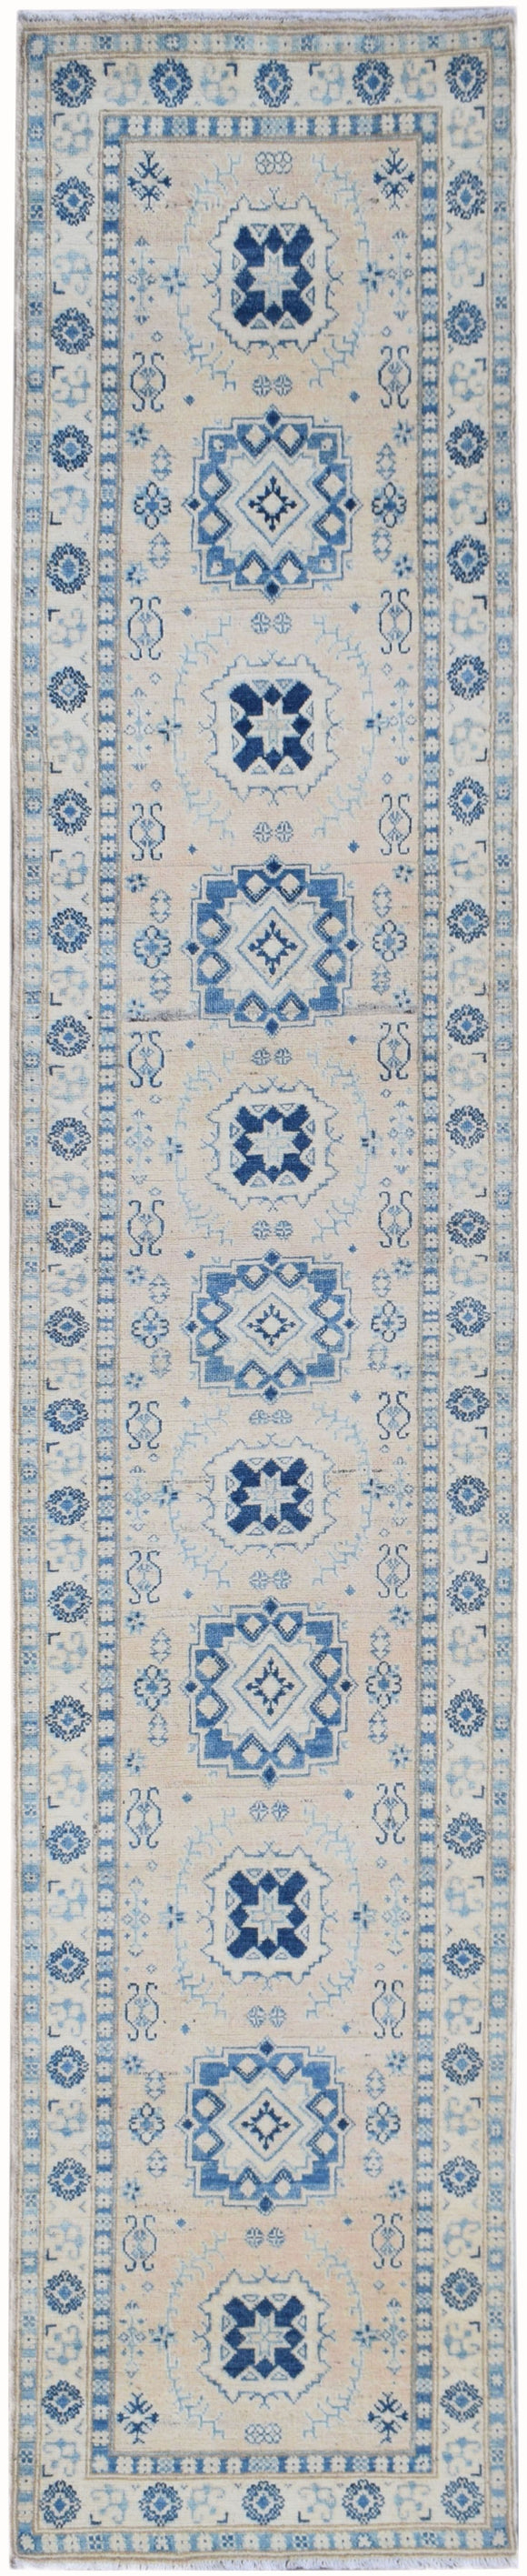 Handmade Sultan Collection Hallway Runner | 400 x 75 cm | 13'1